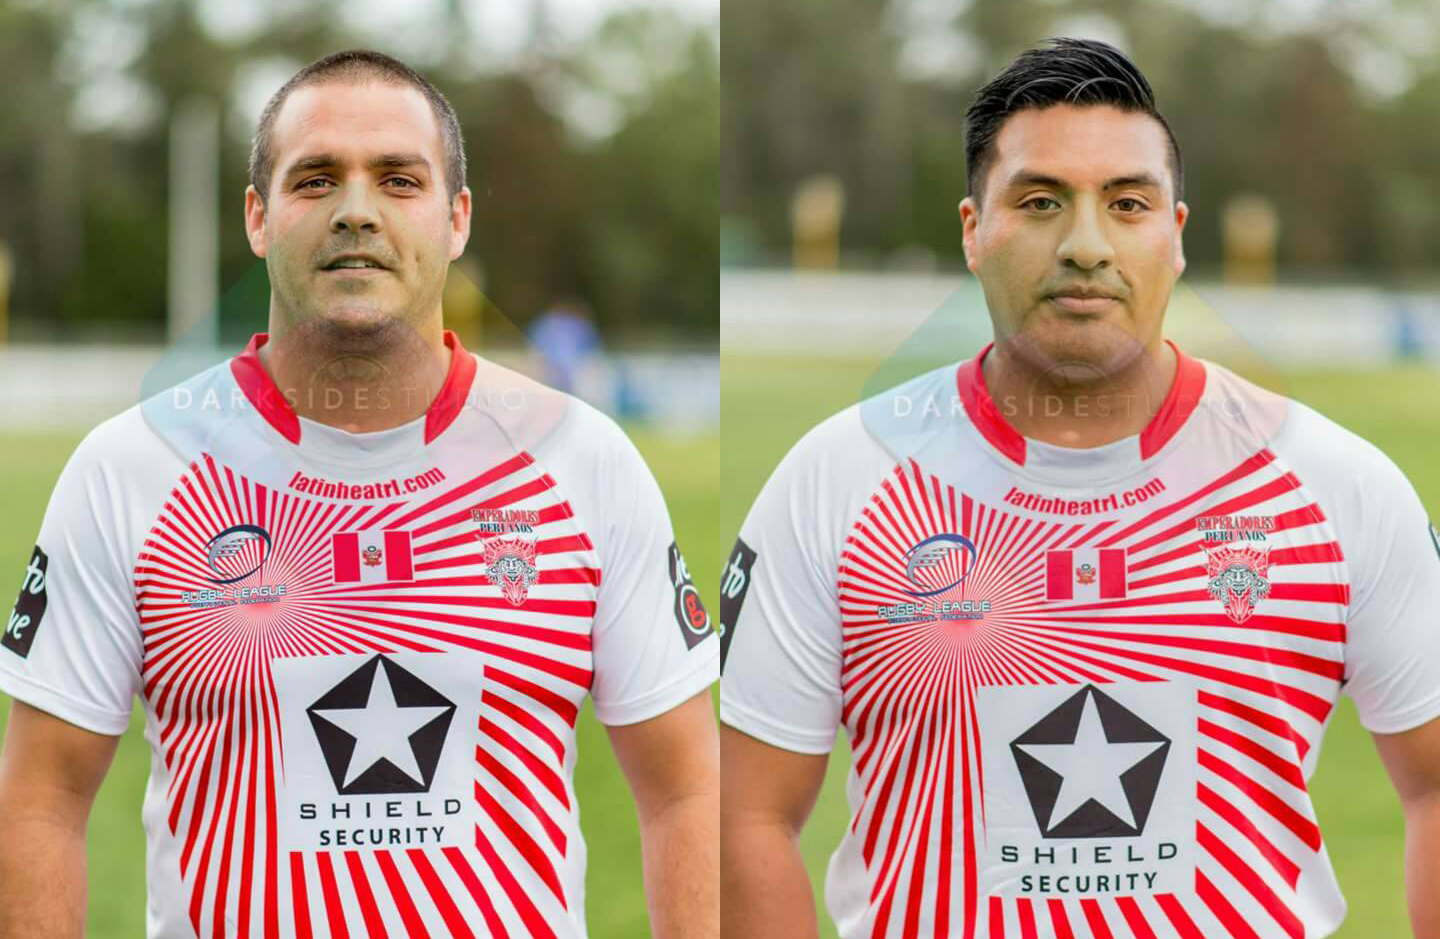 Peru Rugby League players Jye Sommers and Luis Fhon